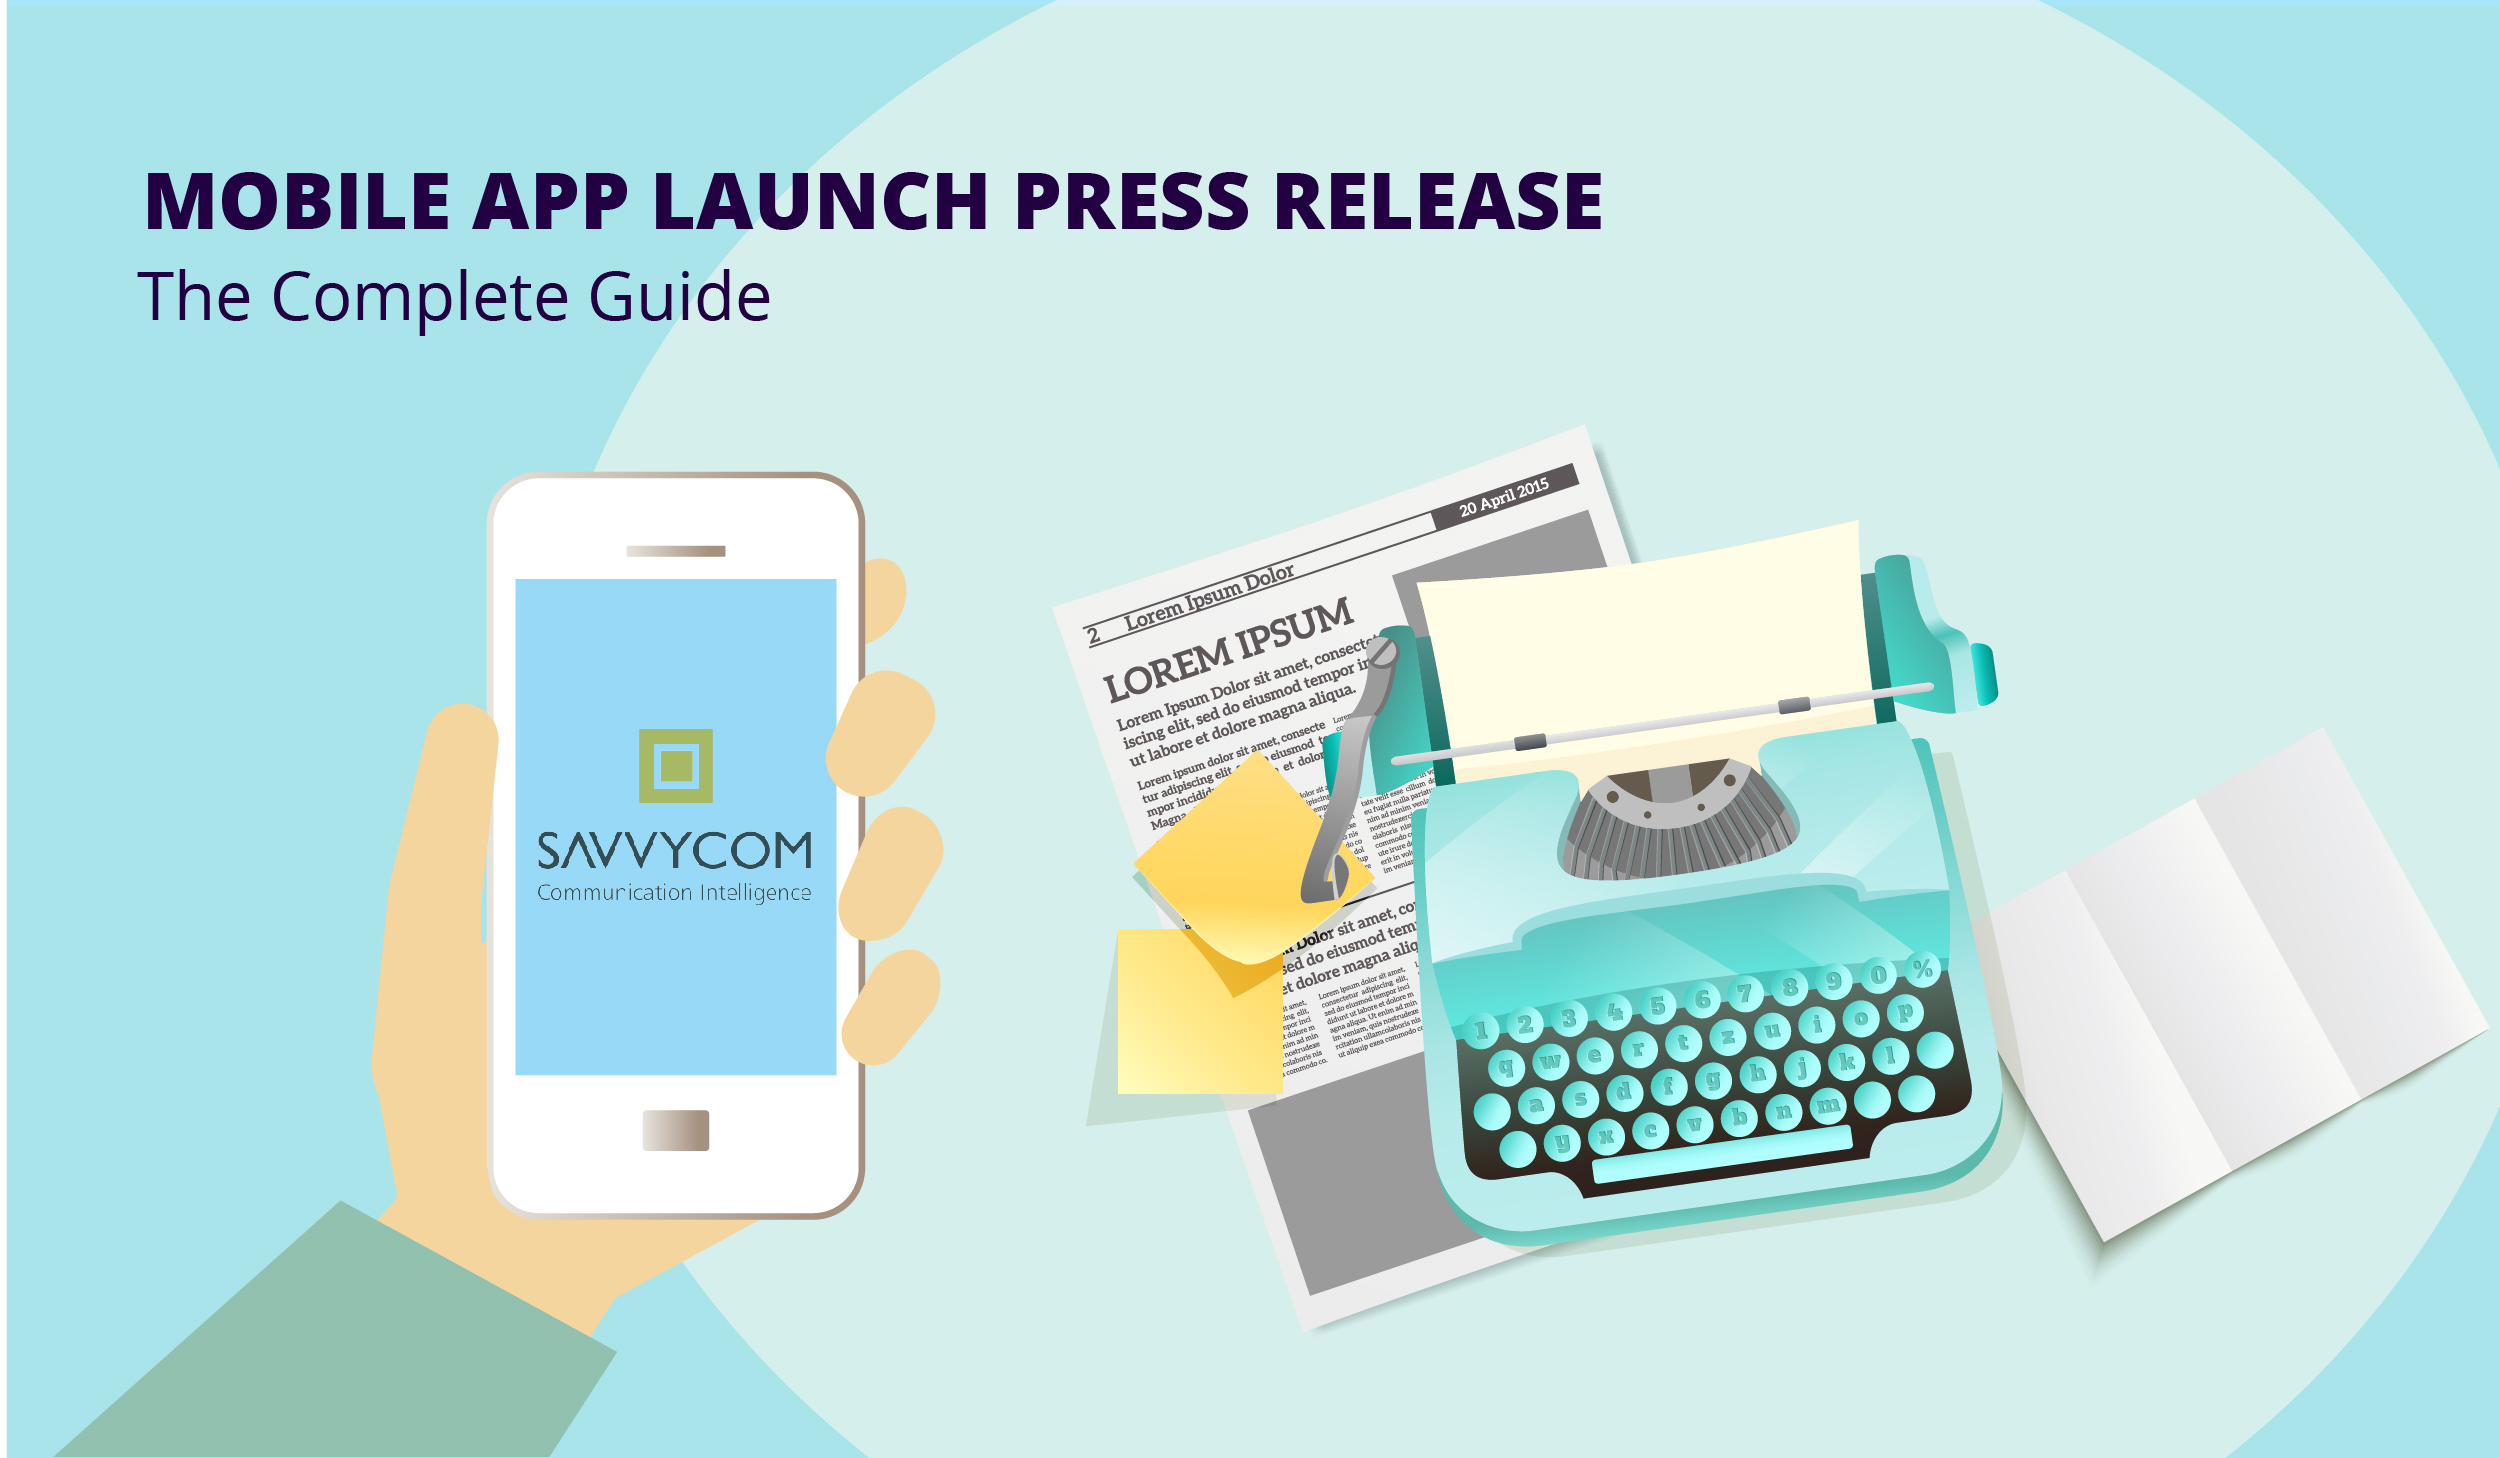 How to Write a Top-Notch Press Release for Your New Mobile App Launch [Free Template + Real Examples] Savvycom